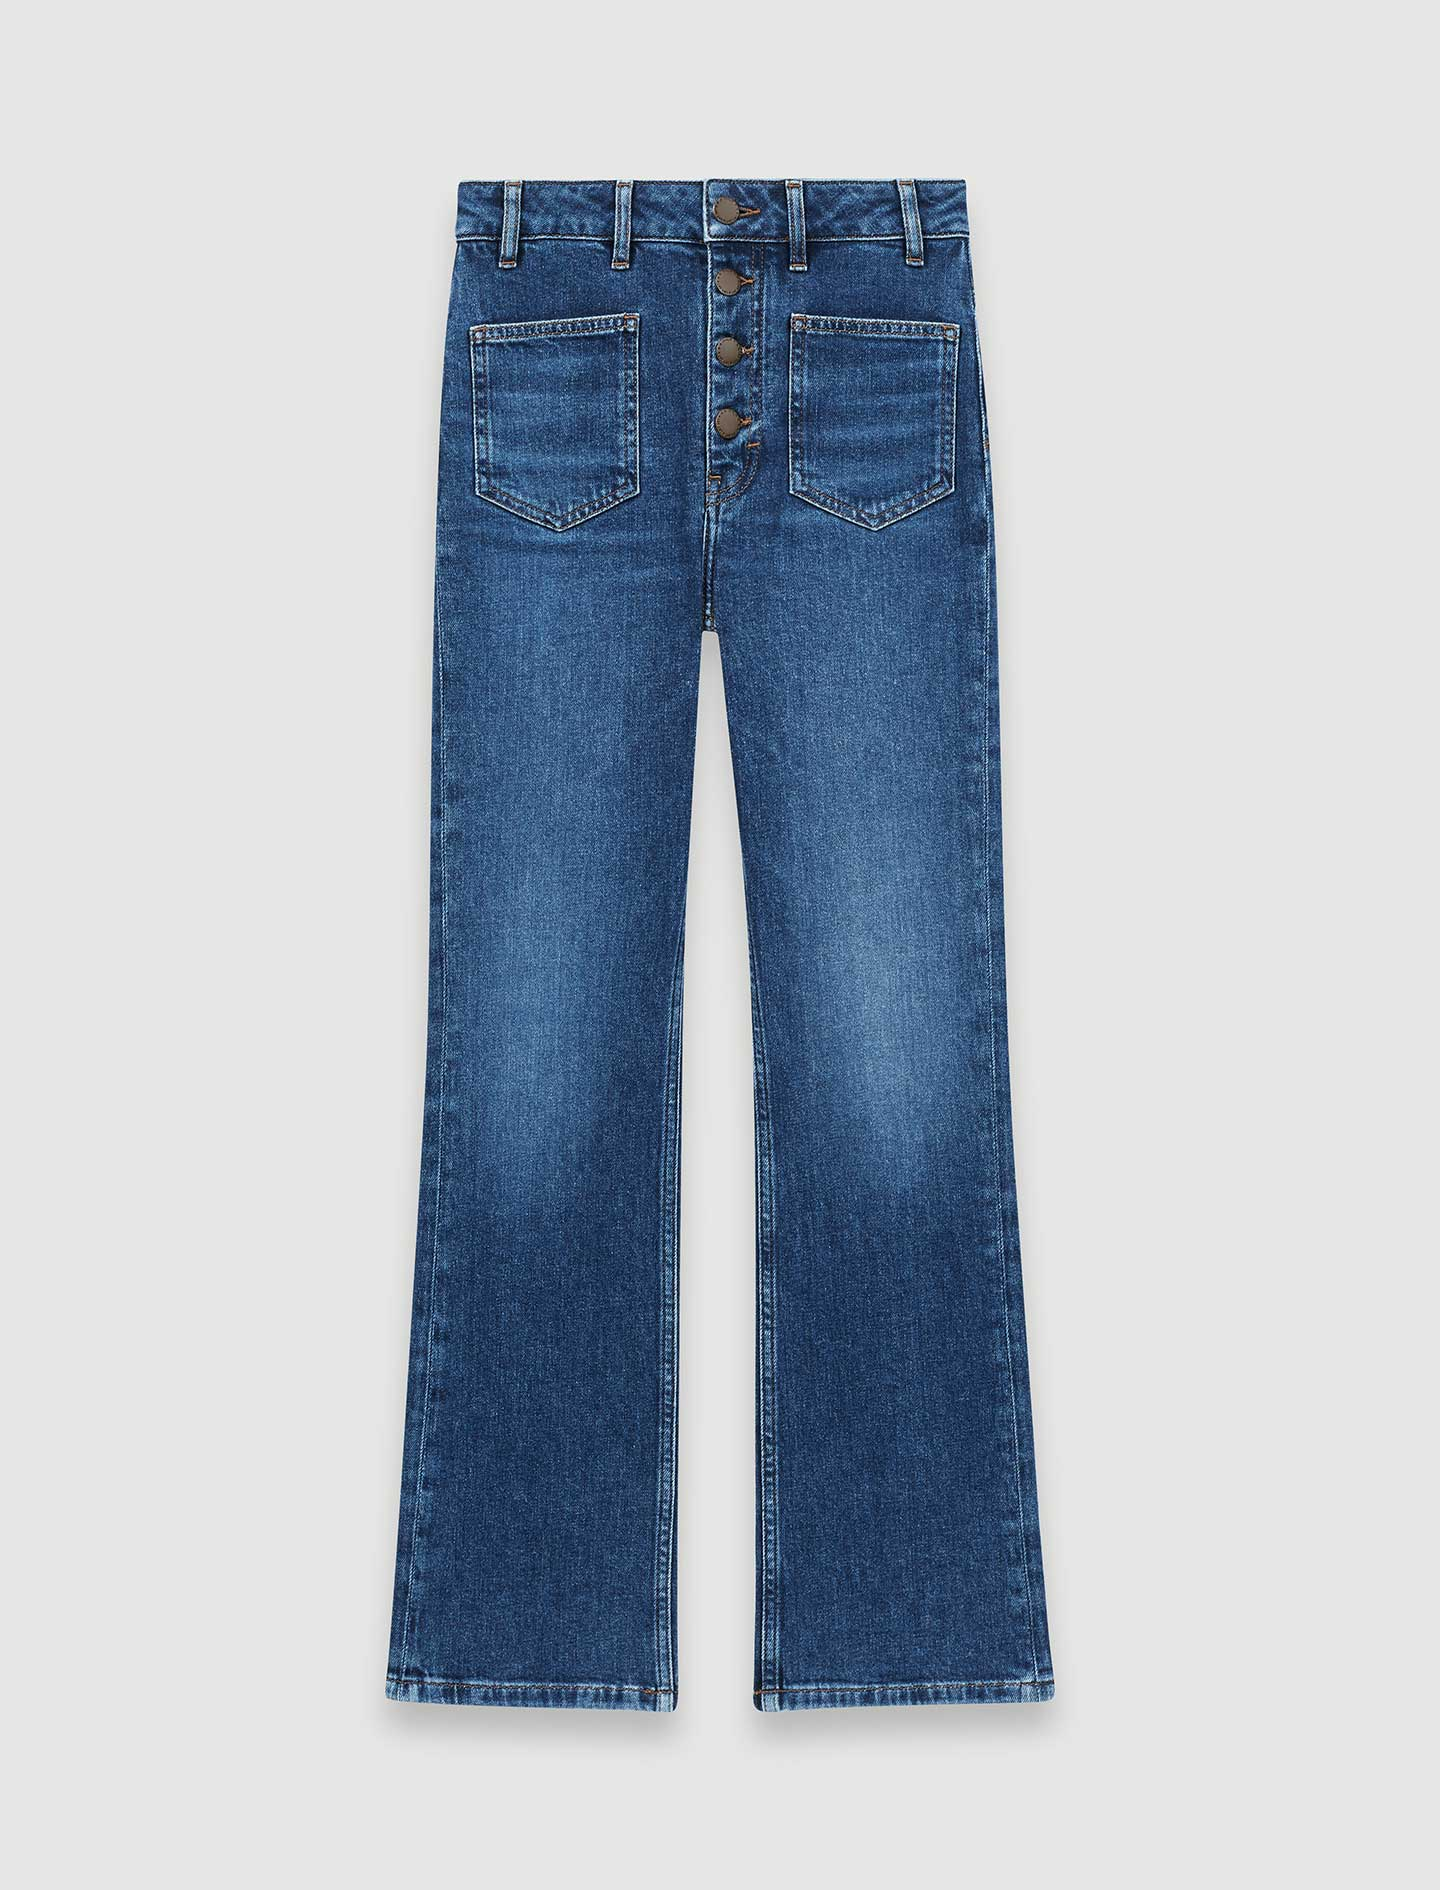 Jeans with pockets - Blue